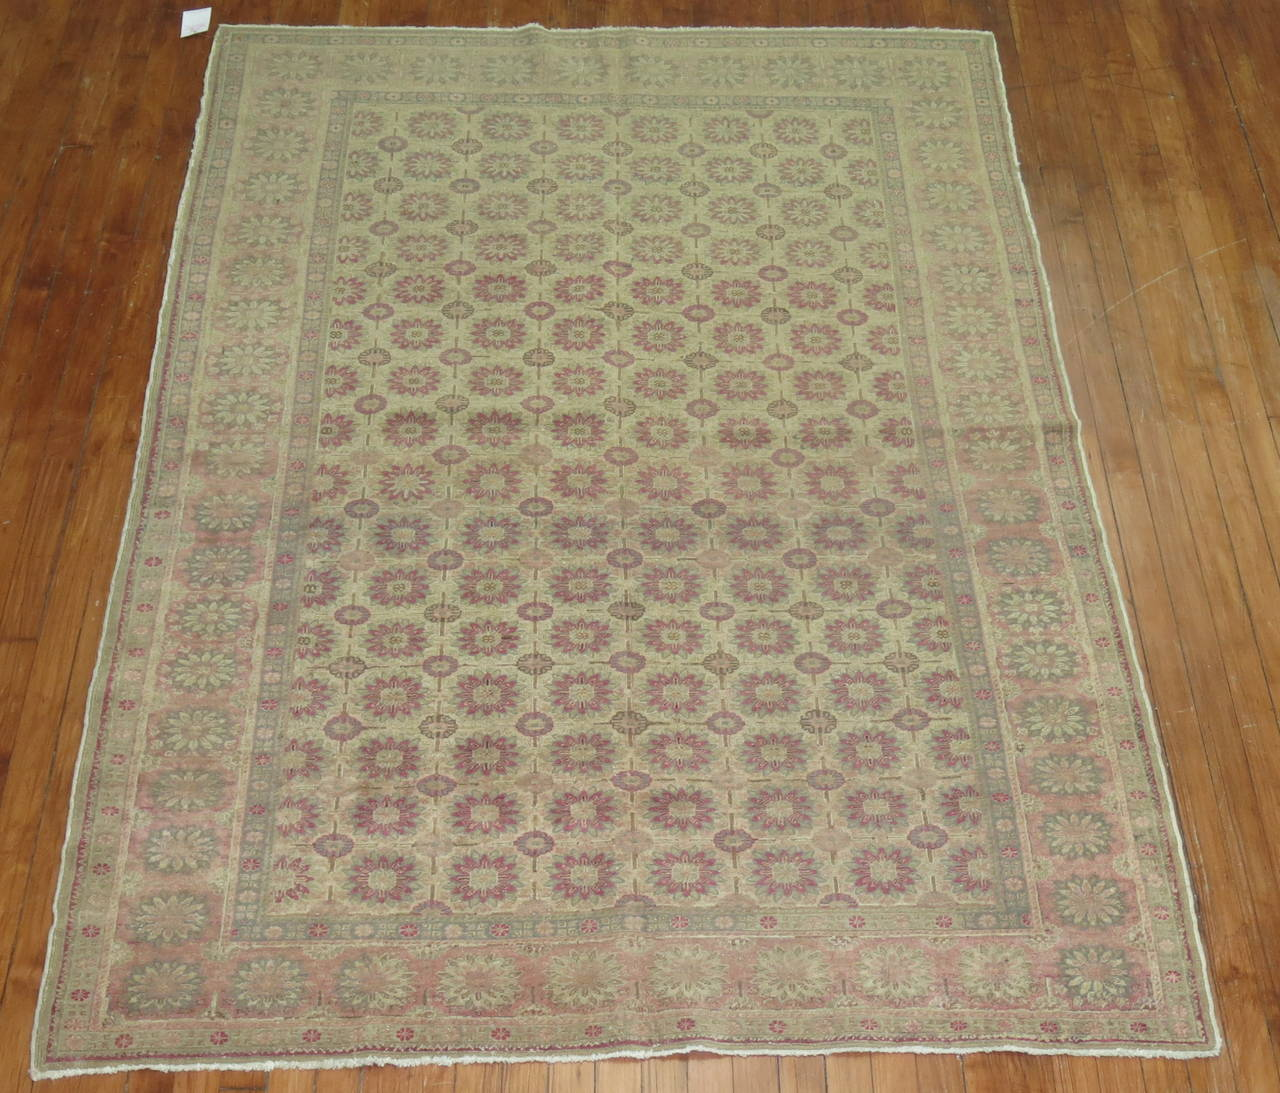 A Turkish Sivas rug with a mini-khani pattern in beige and pink cotton accents.